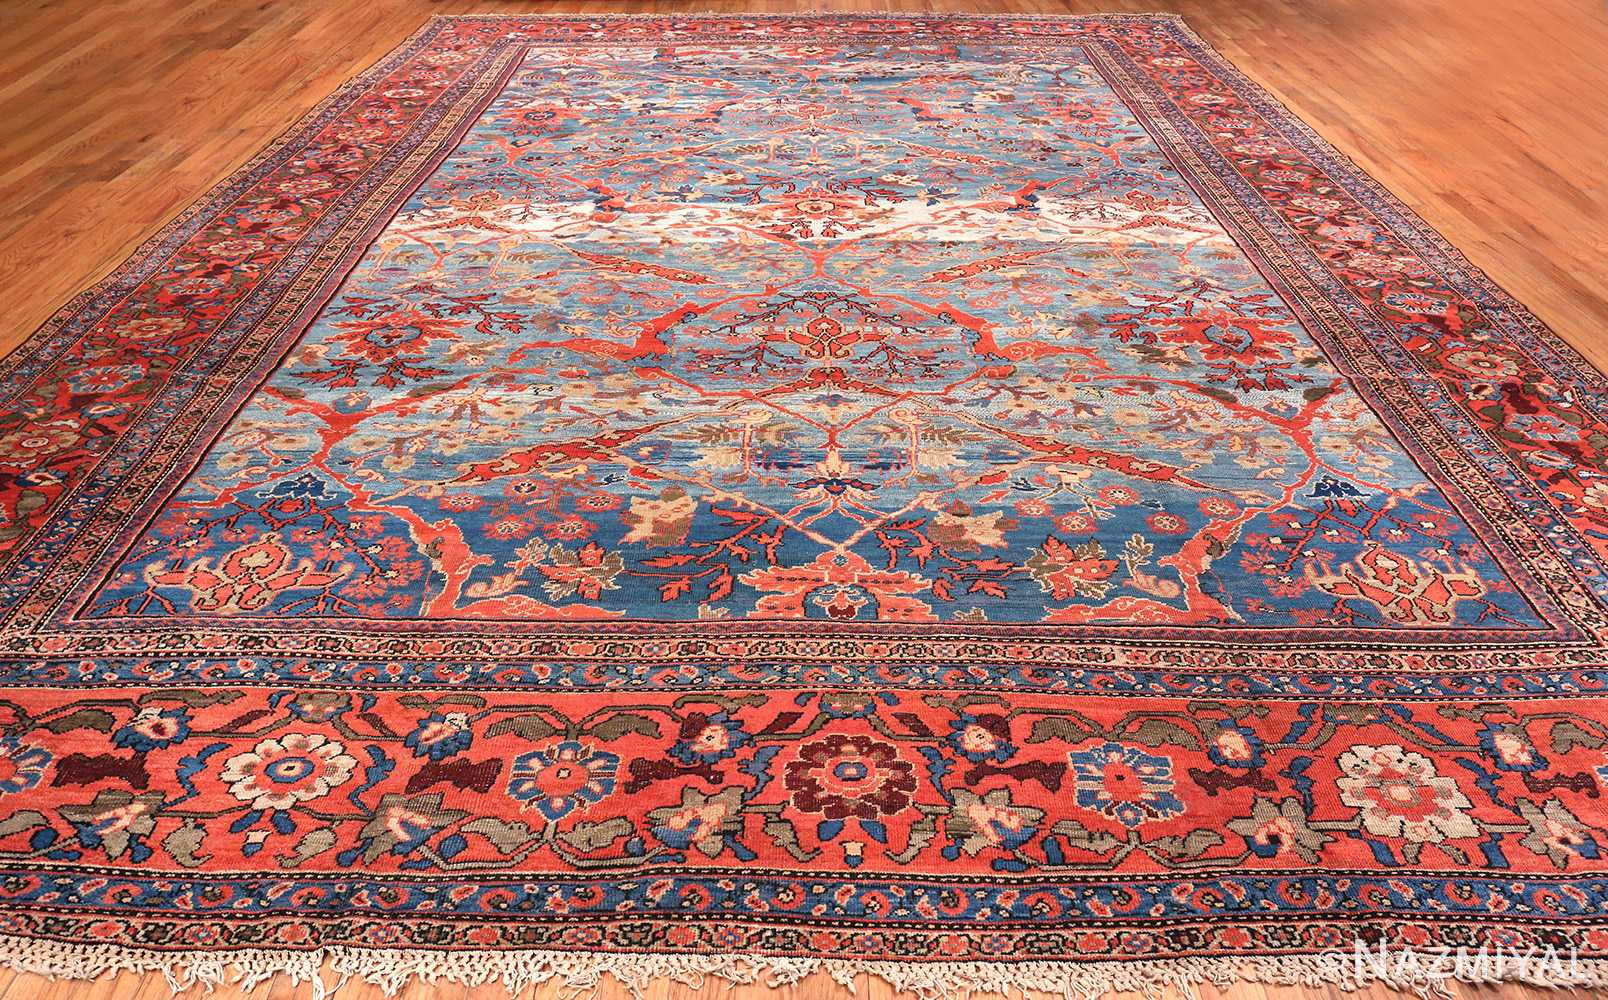 Antique Light Blue Persian Sultanabad Carpet 47270 By Nazmiyal Ny